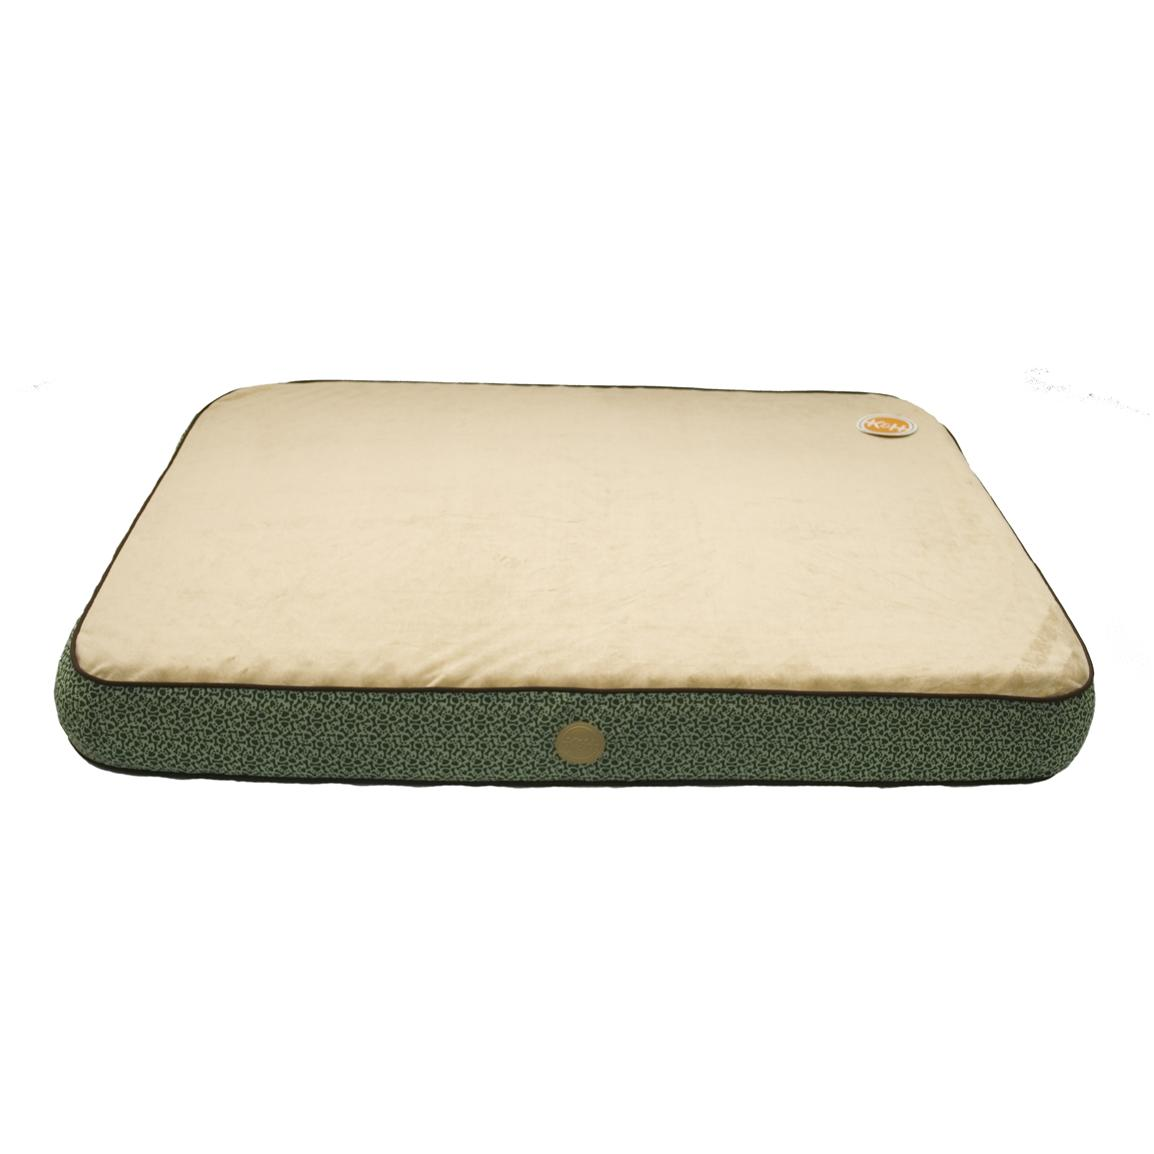 Superior Orthopedic Bed, Green